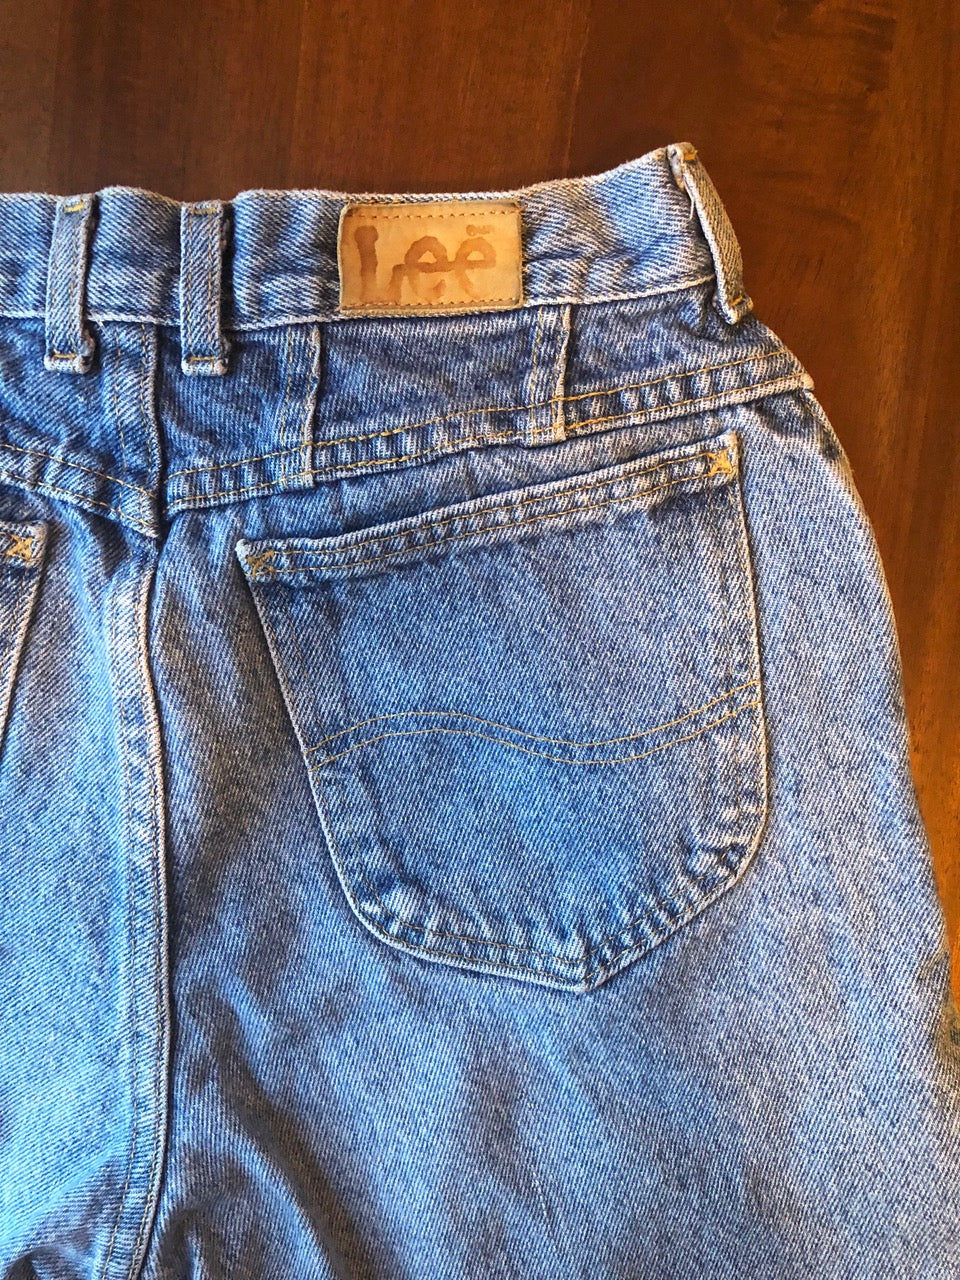 26ccd09a Vintage Lee Jeans 26 Waist – Lost Season Supply Co.